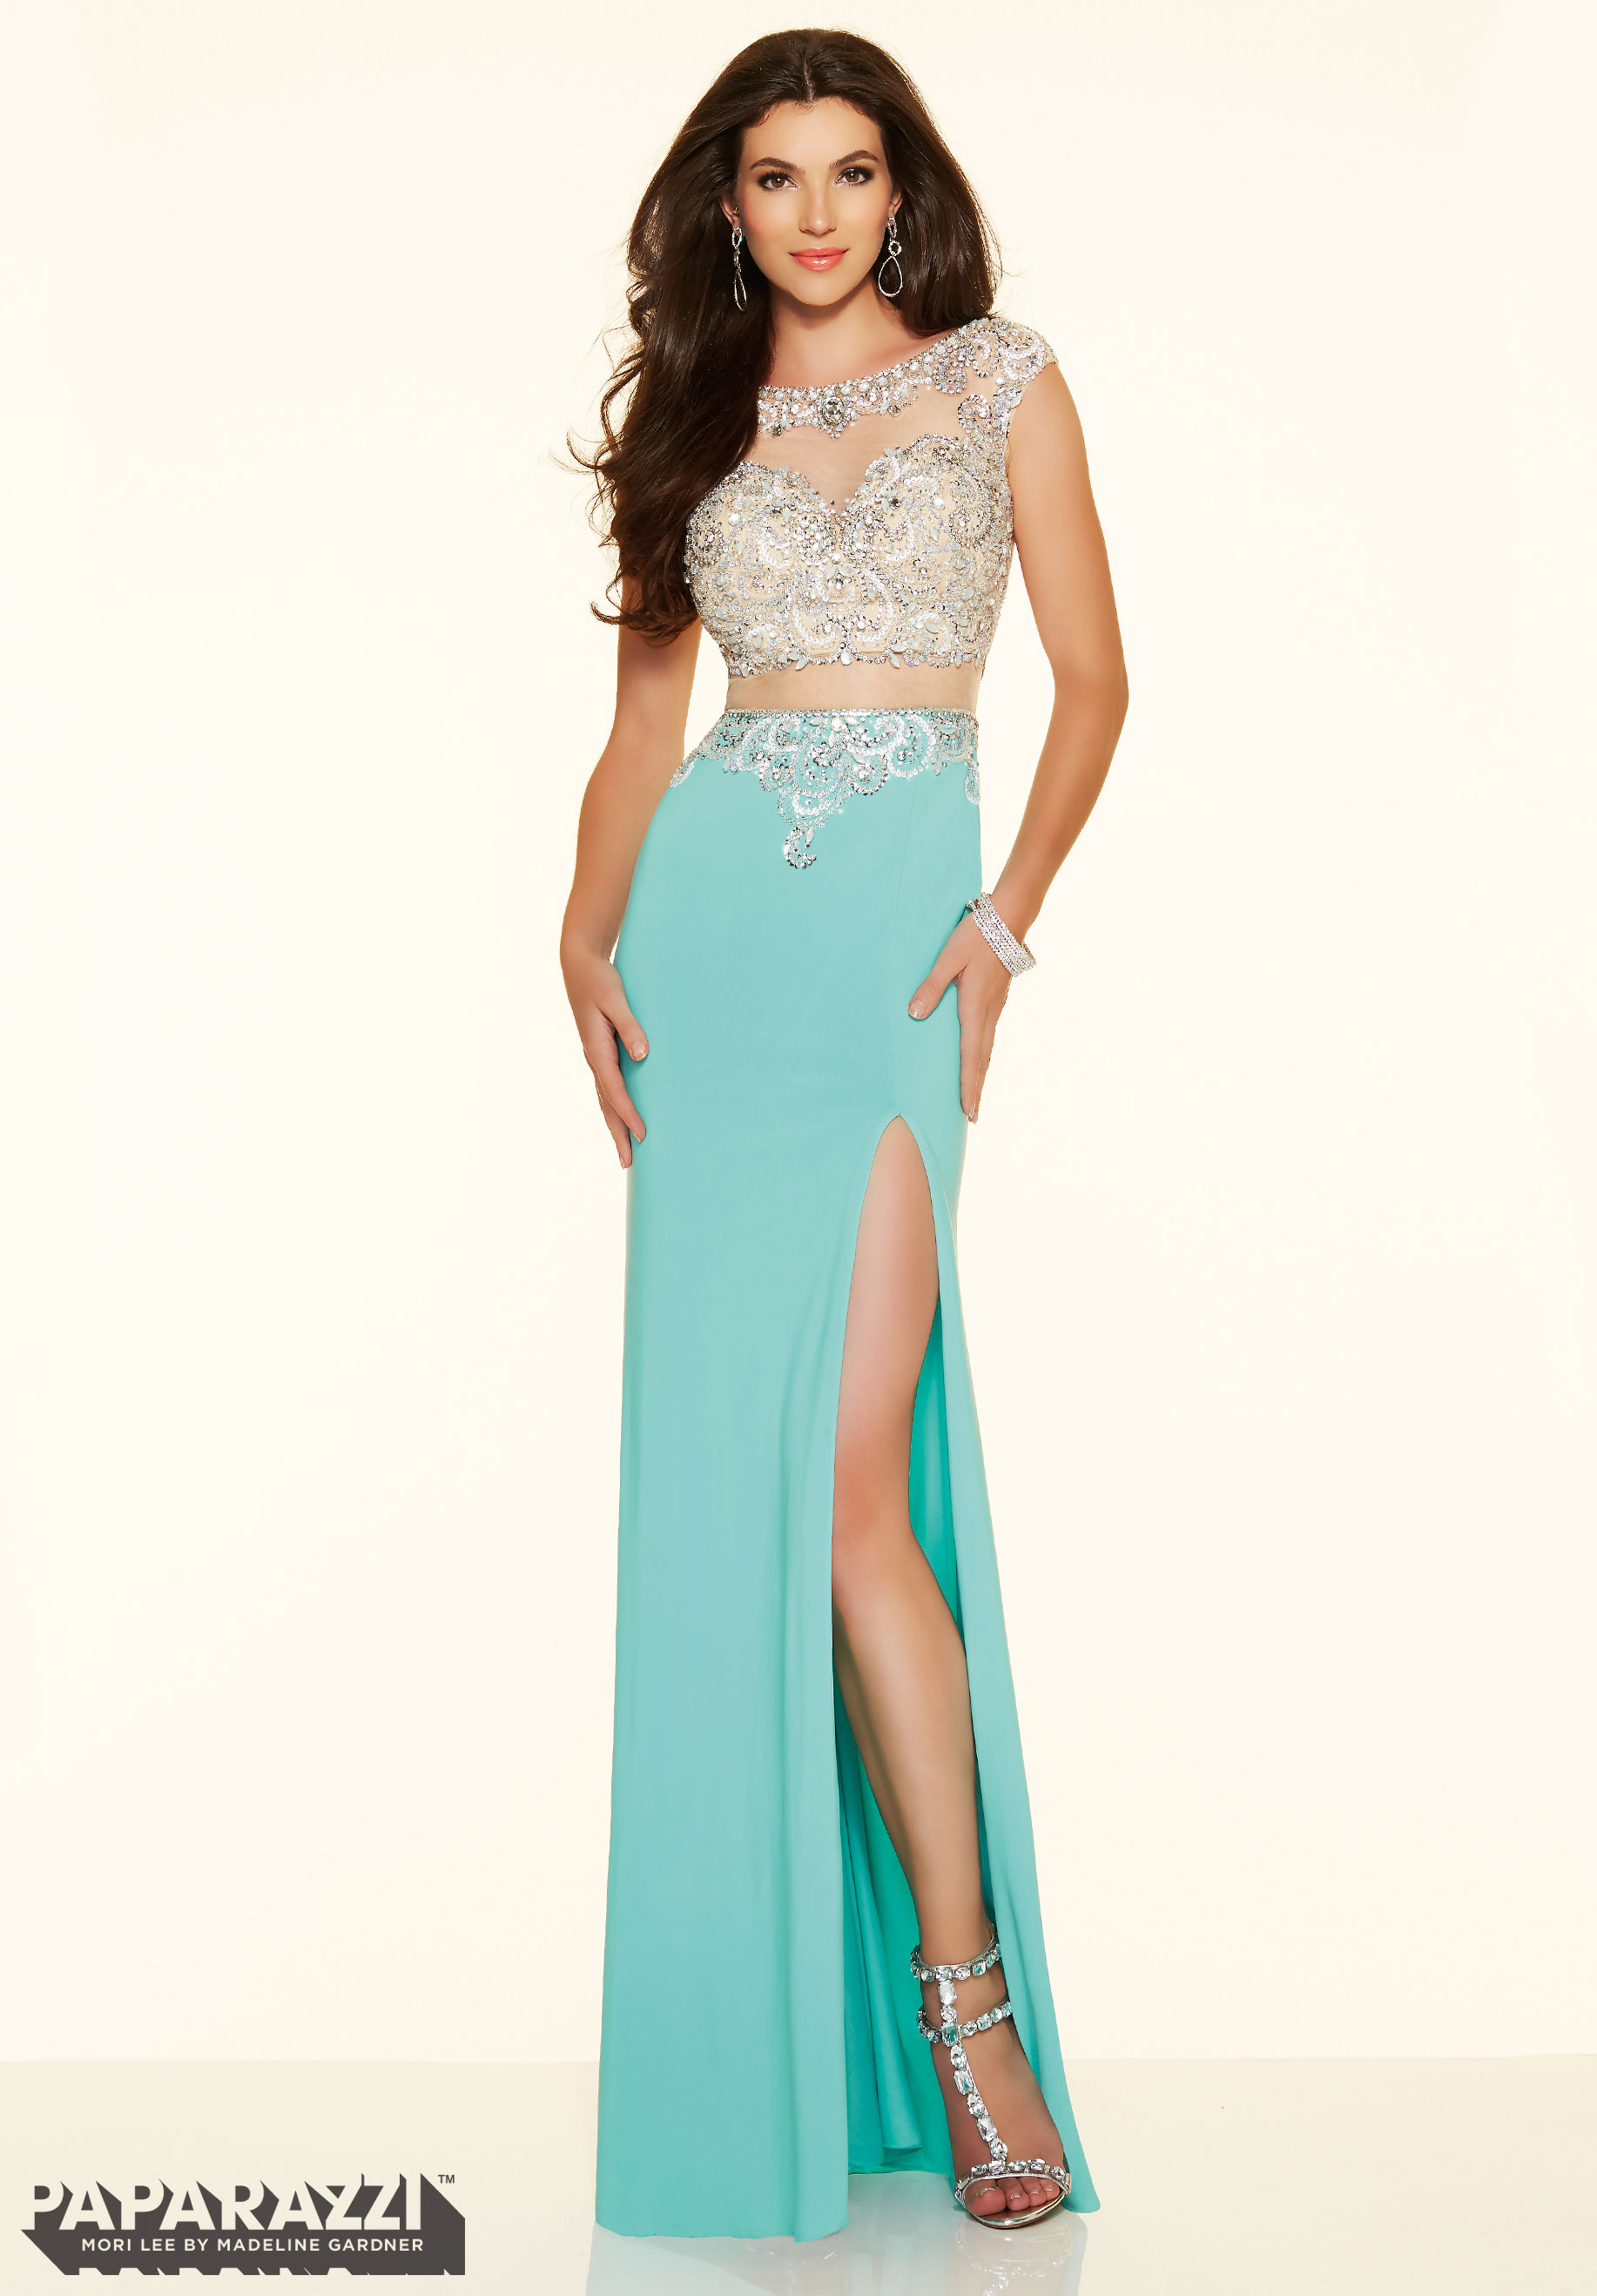 Prom Dresses Stores In San Antonio Tx - Wedding Dresses In Jax